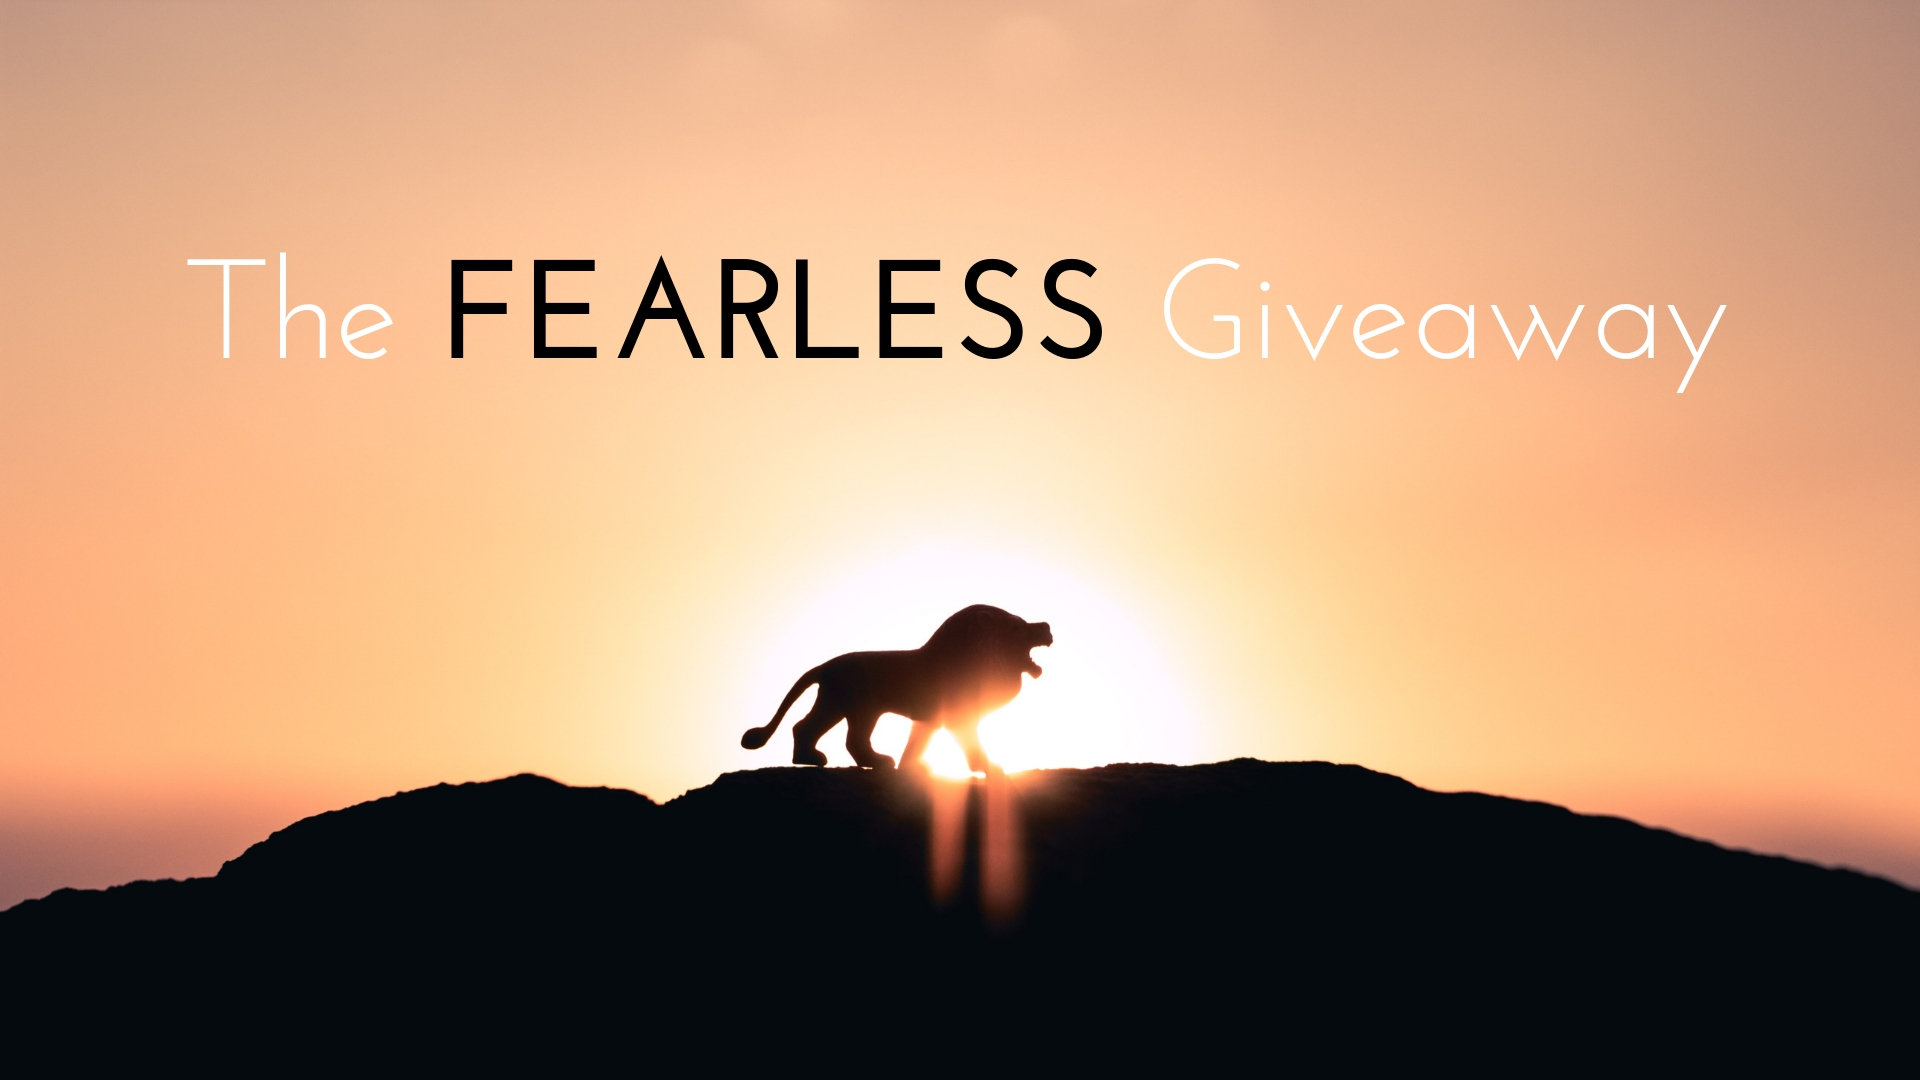 banner-the-fearless-giveaway-02.jpg